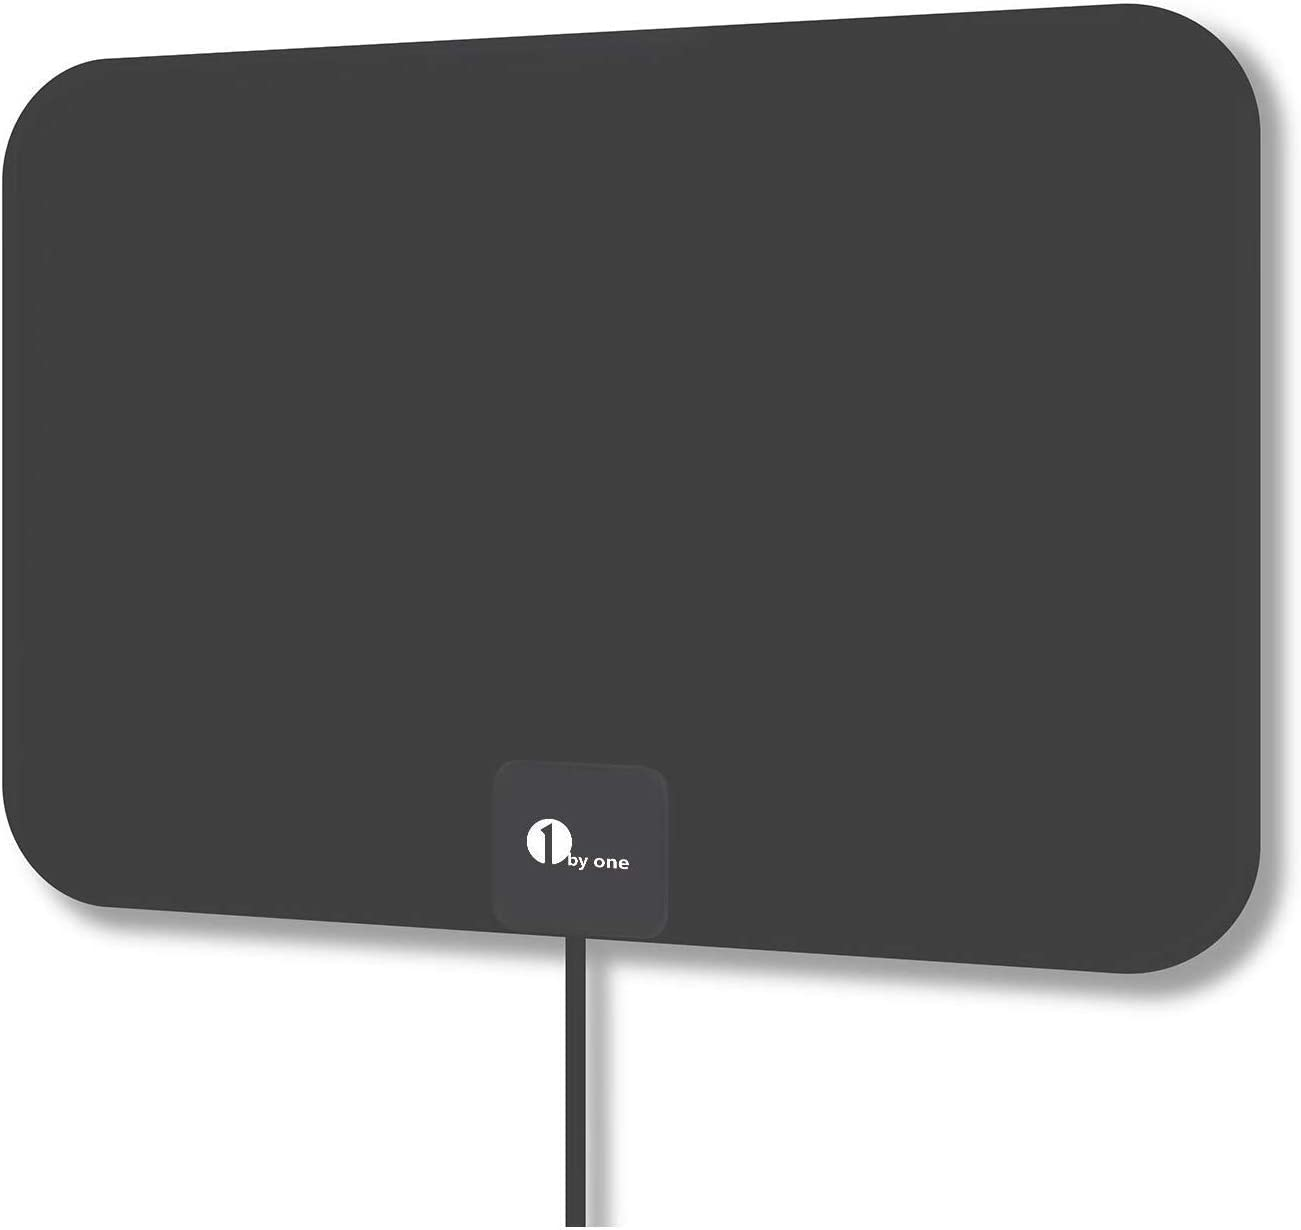 Latest HD Digital Amplified TV Antenna - Support 4K 1080P & All Older TV's Indoor Powerful HDTV Amplifier Signal Booster - Coax Cable Included